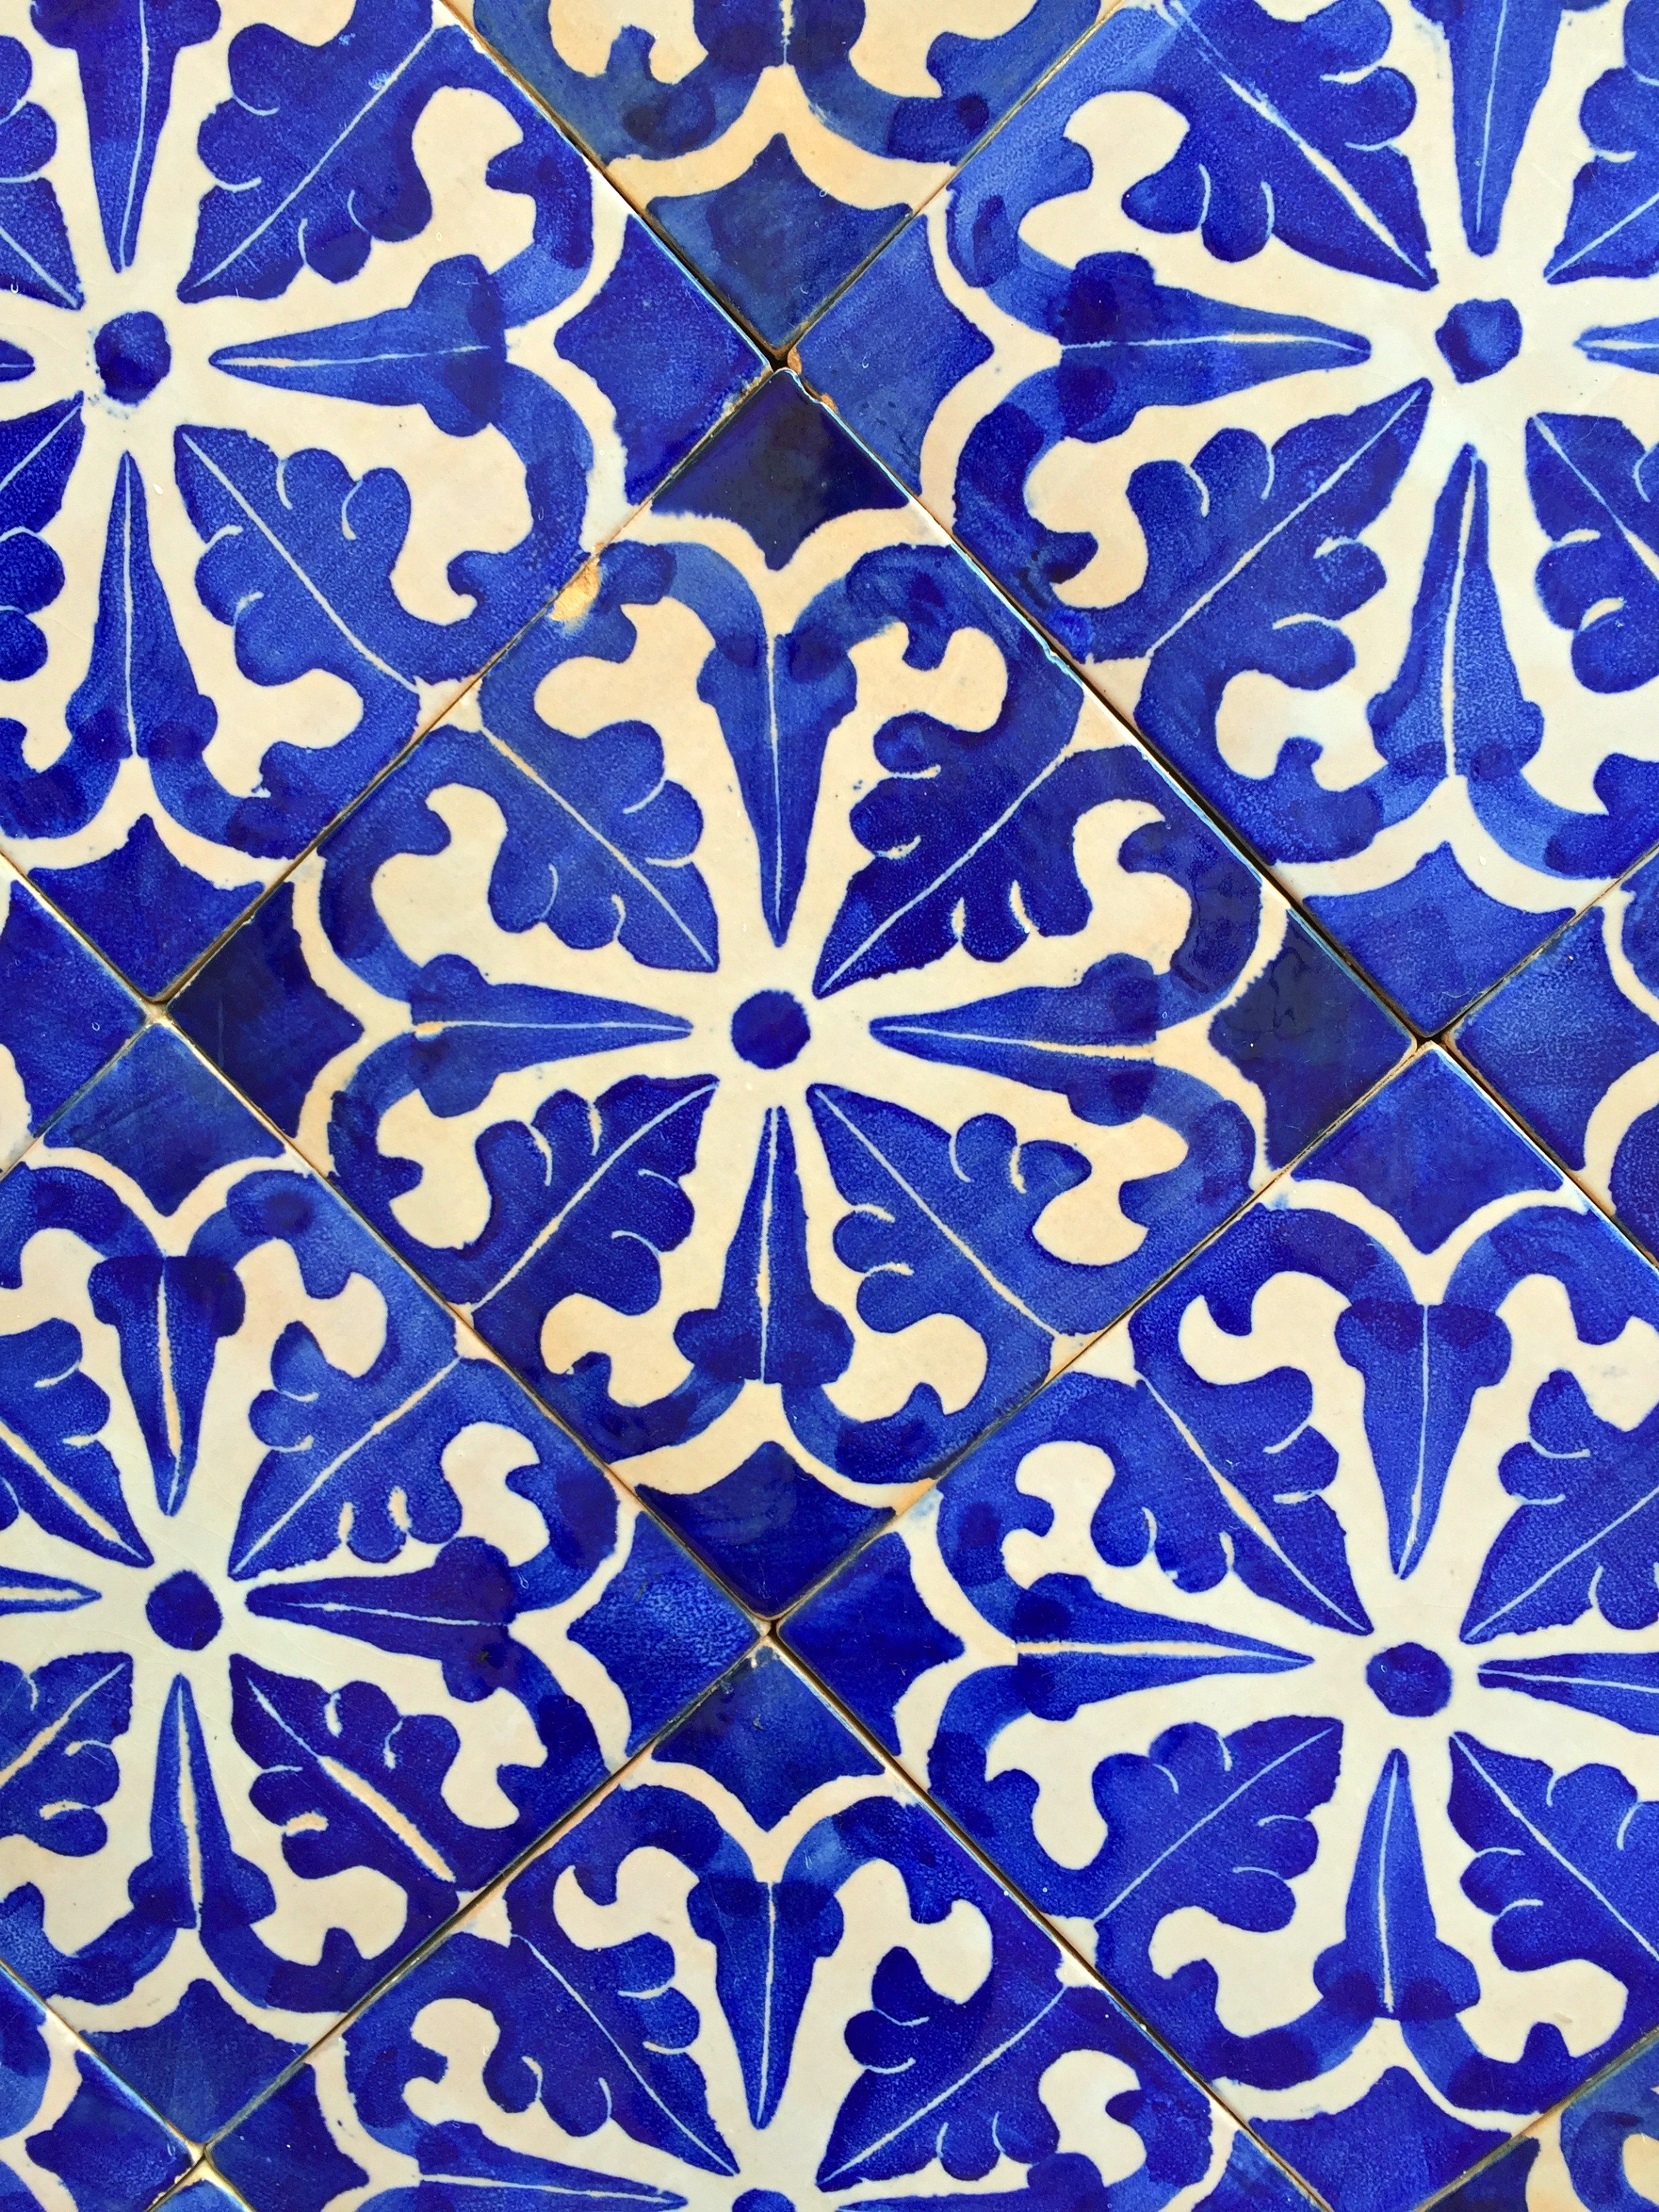 Catalonia tiles, Costa Barcelona